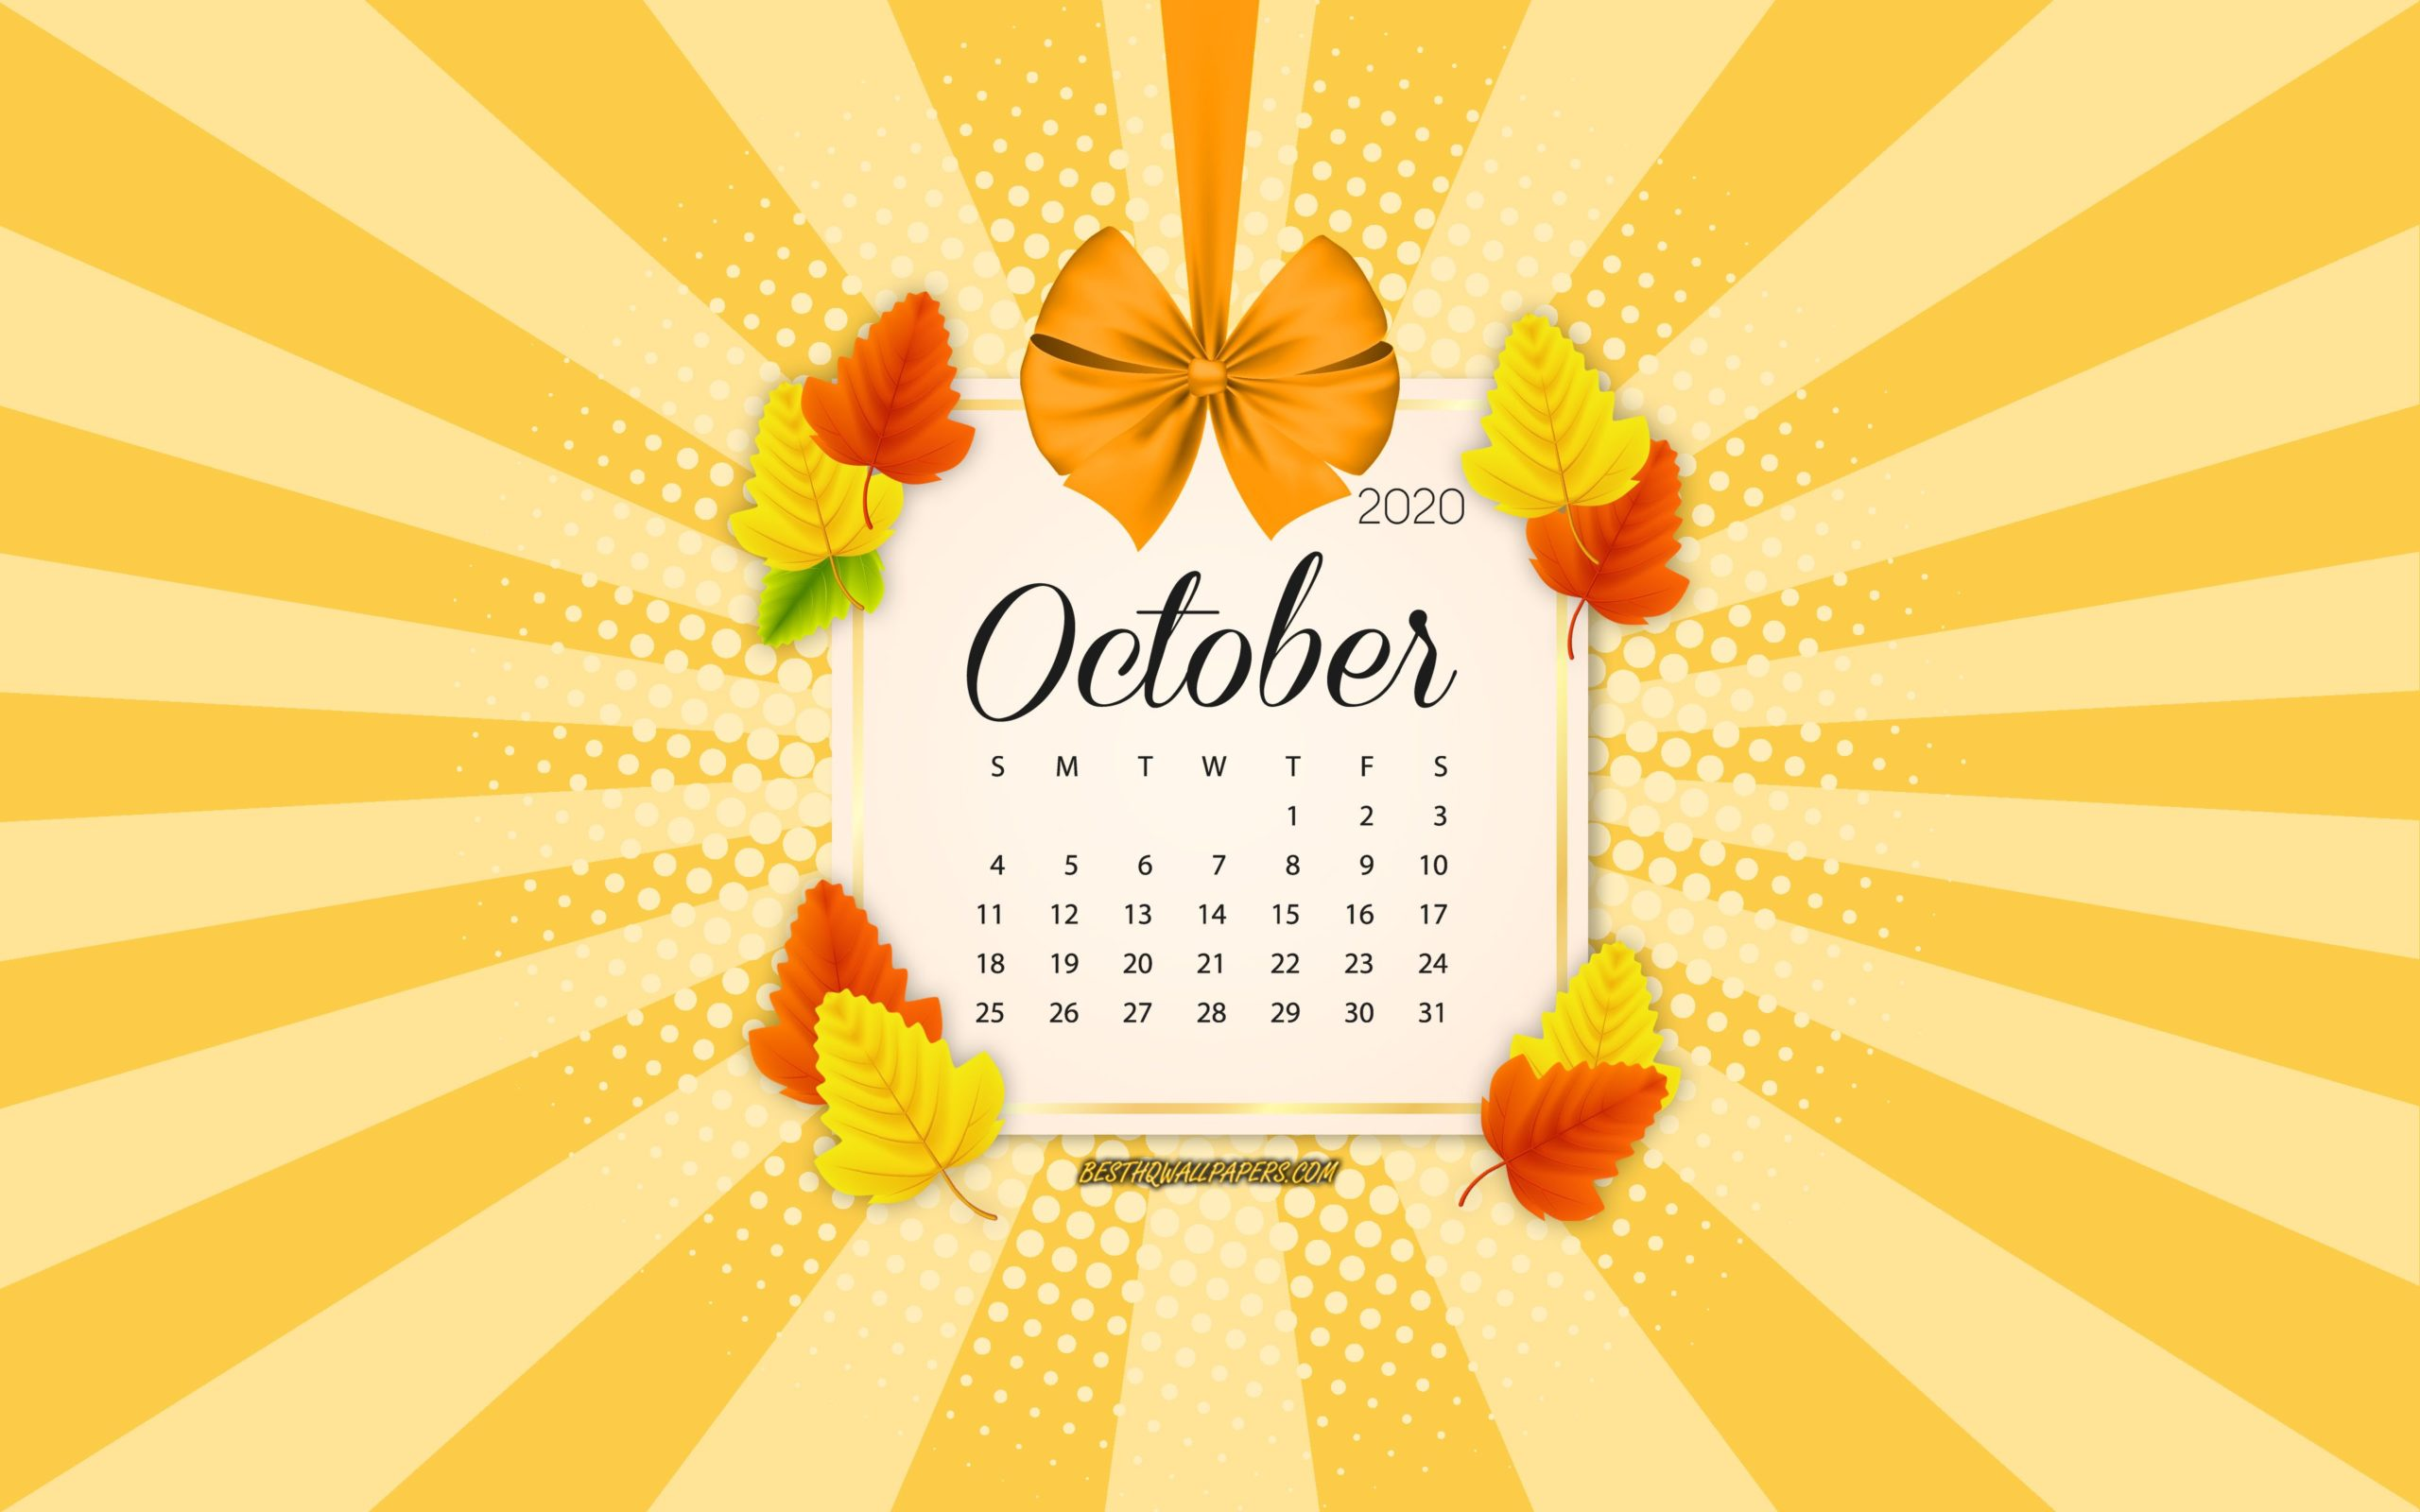 october wallpaper aesthetic